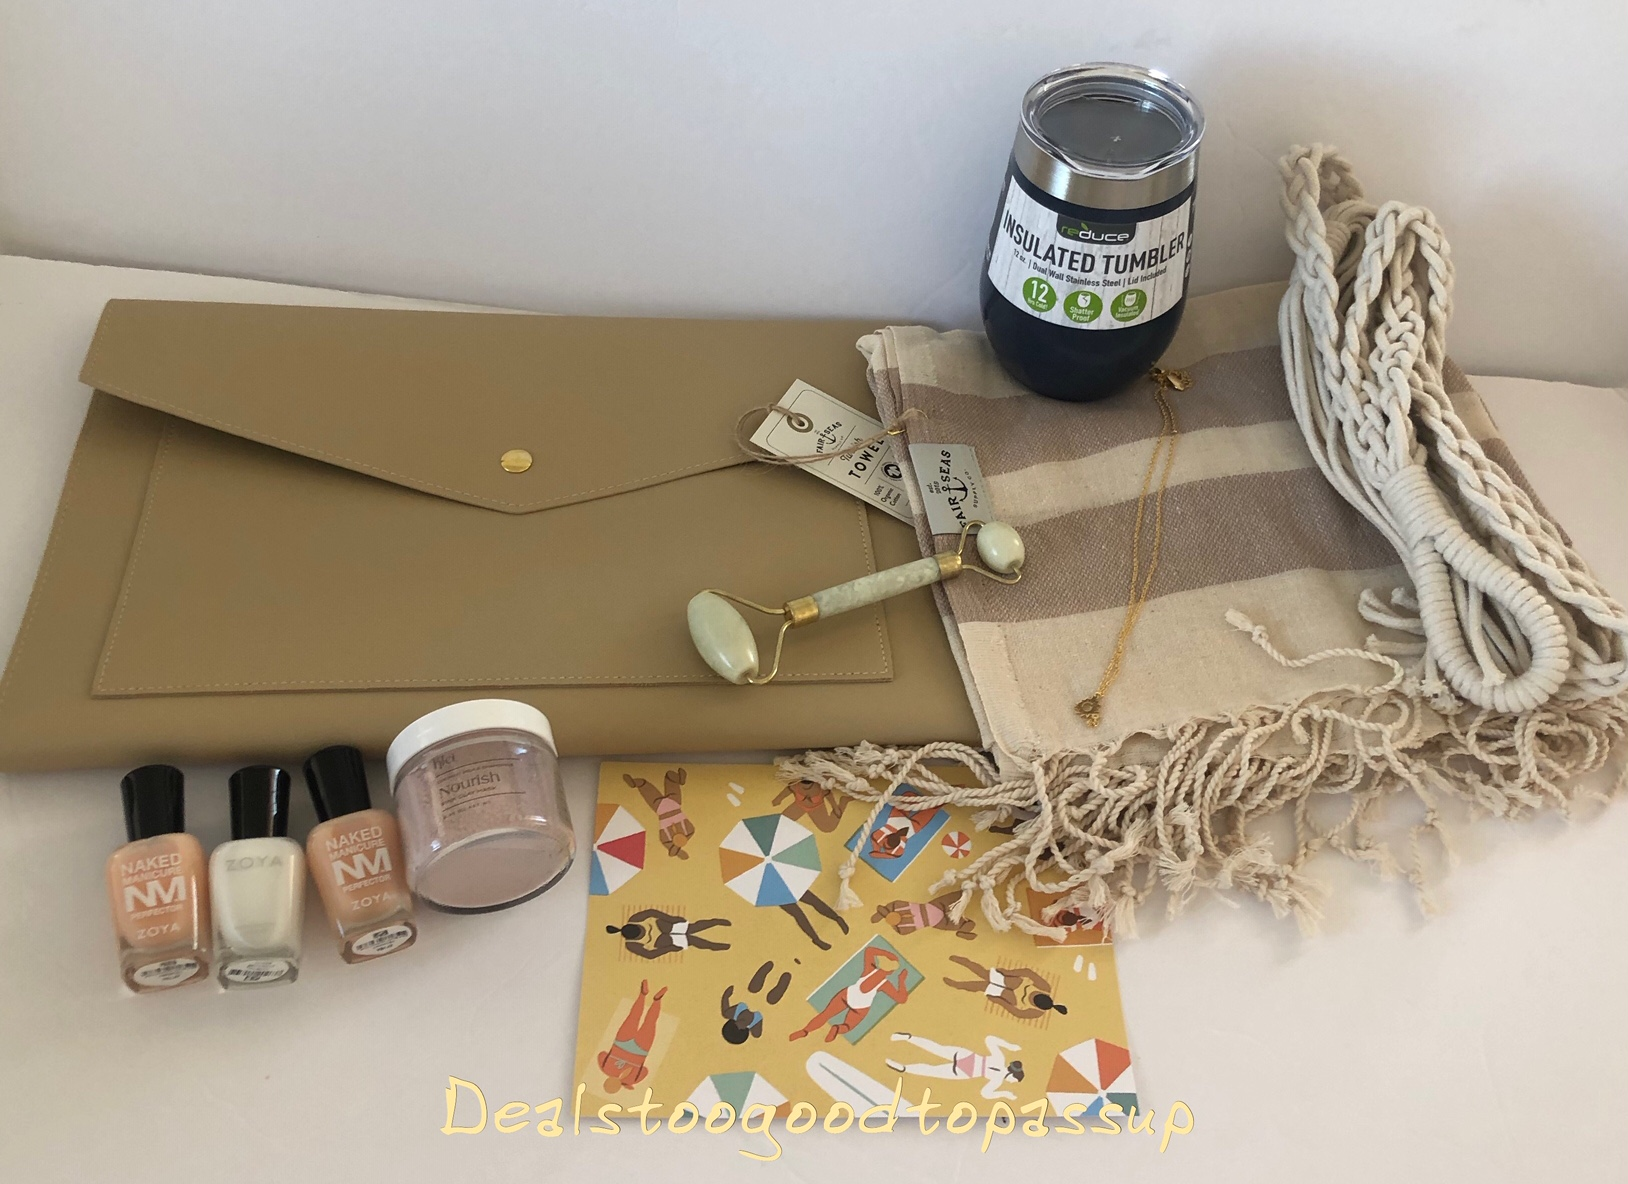 Winter Causebox 2020.Causebox Customization Options 2019 And 2020 Deals Too